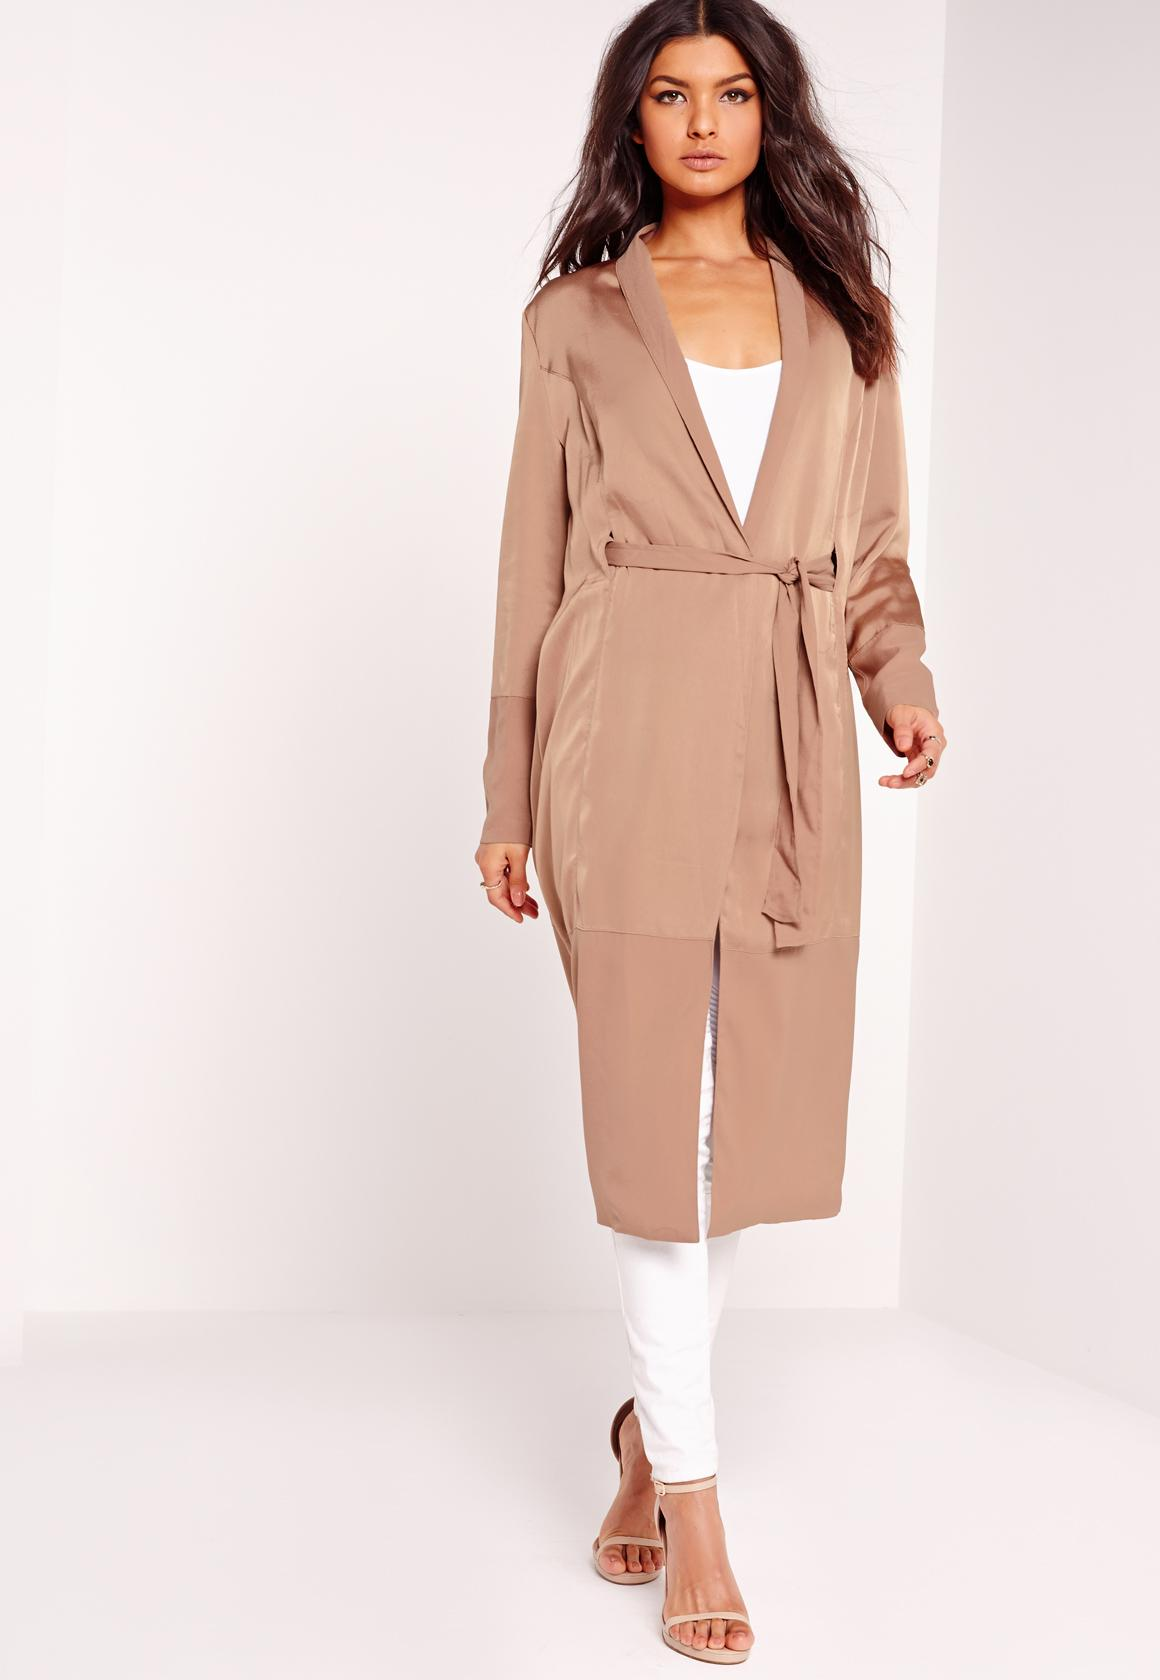 SATIN CHIFFON MAXI DUSTER JACKET | Missguided